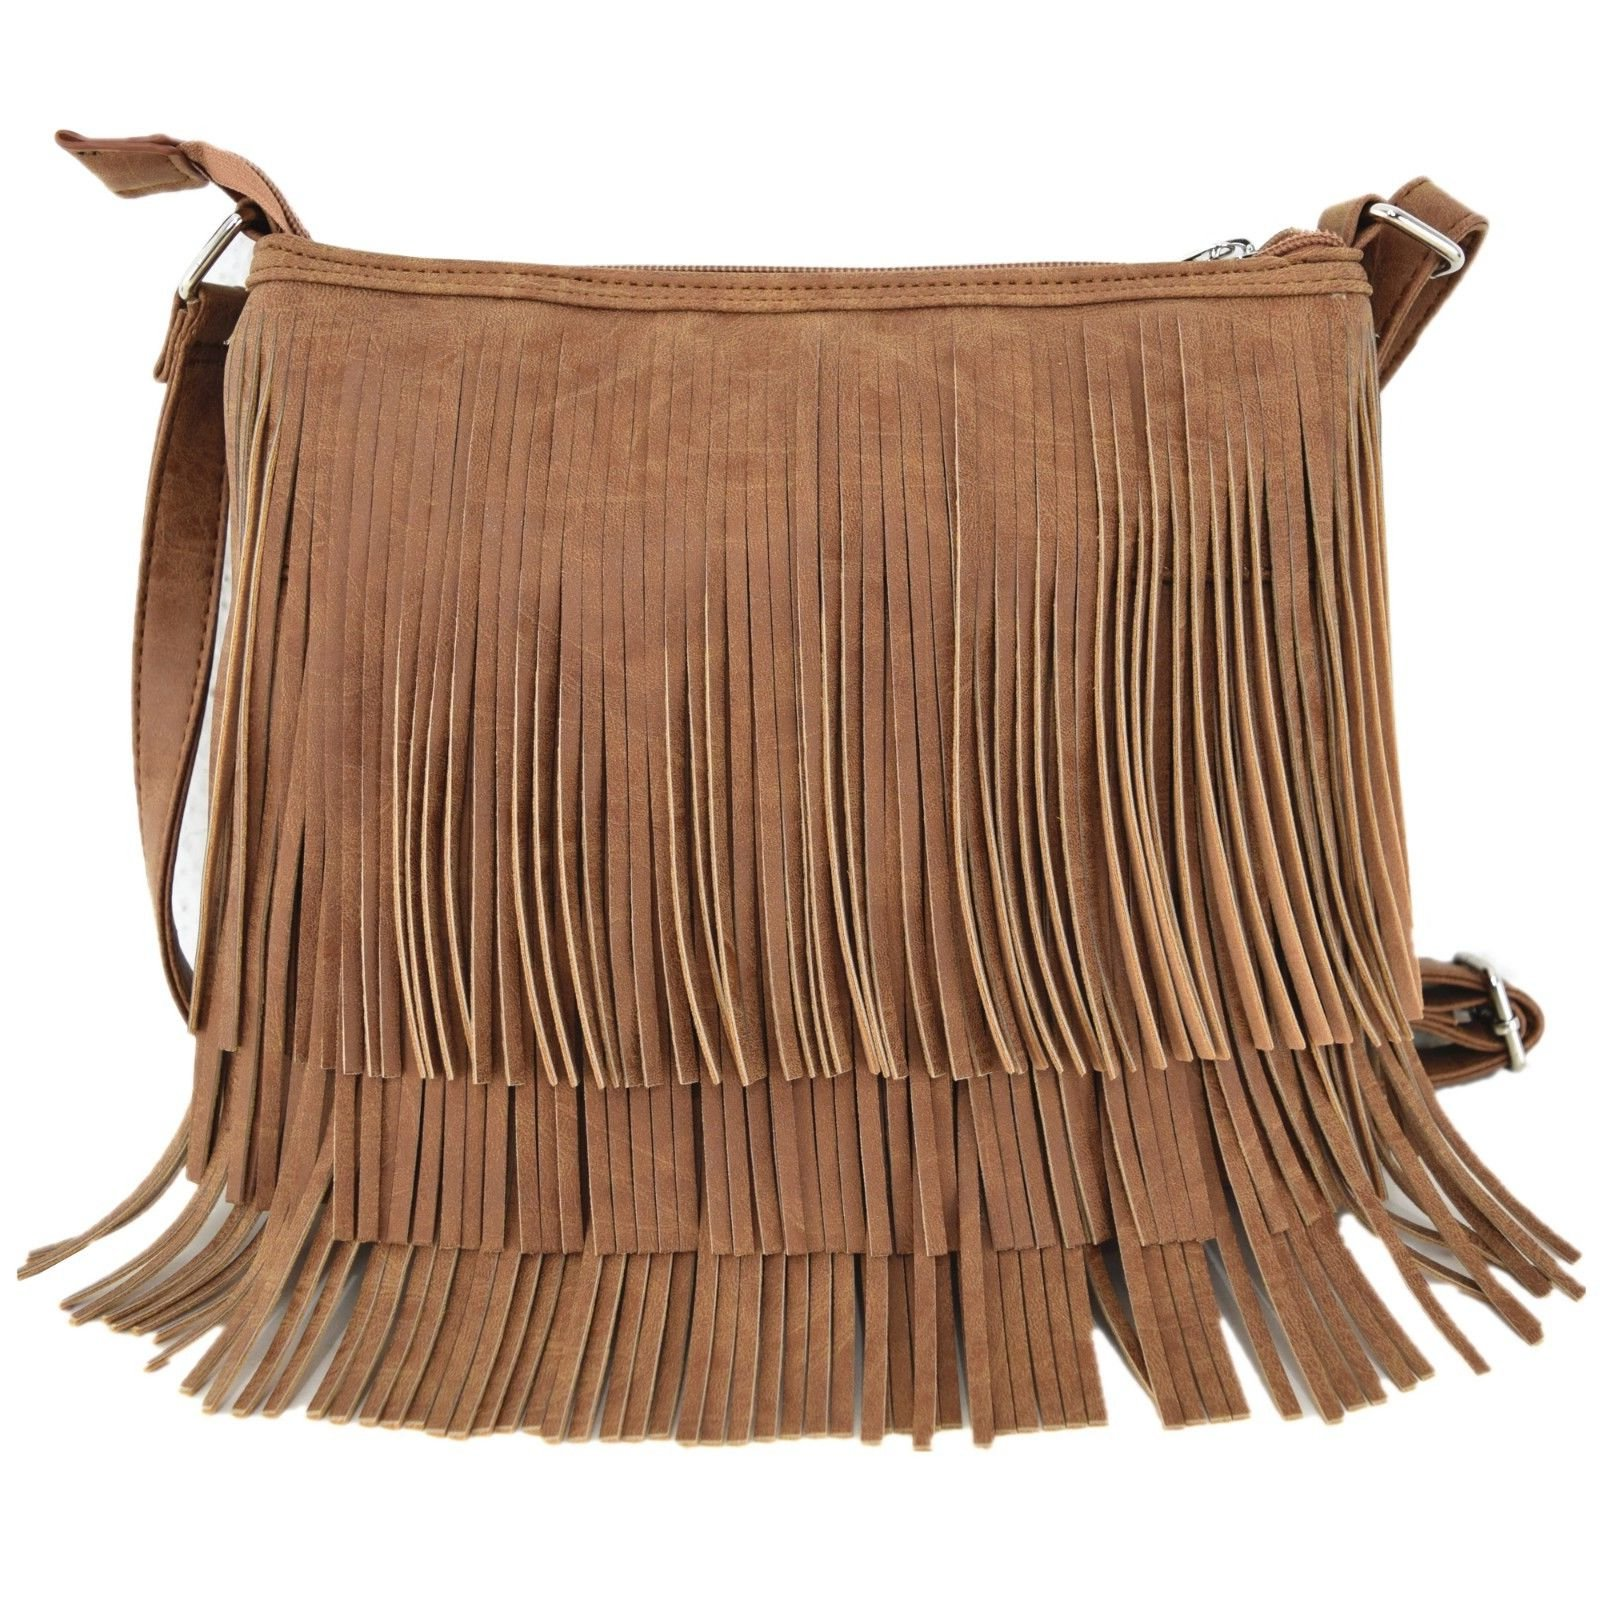 Western Cowgirl Style Fringe Cross Body Handbags Concealed Carry Purse Country Women Single Shoulder Bags (Cognac)